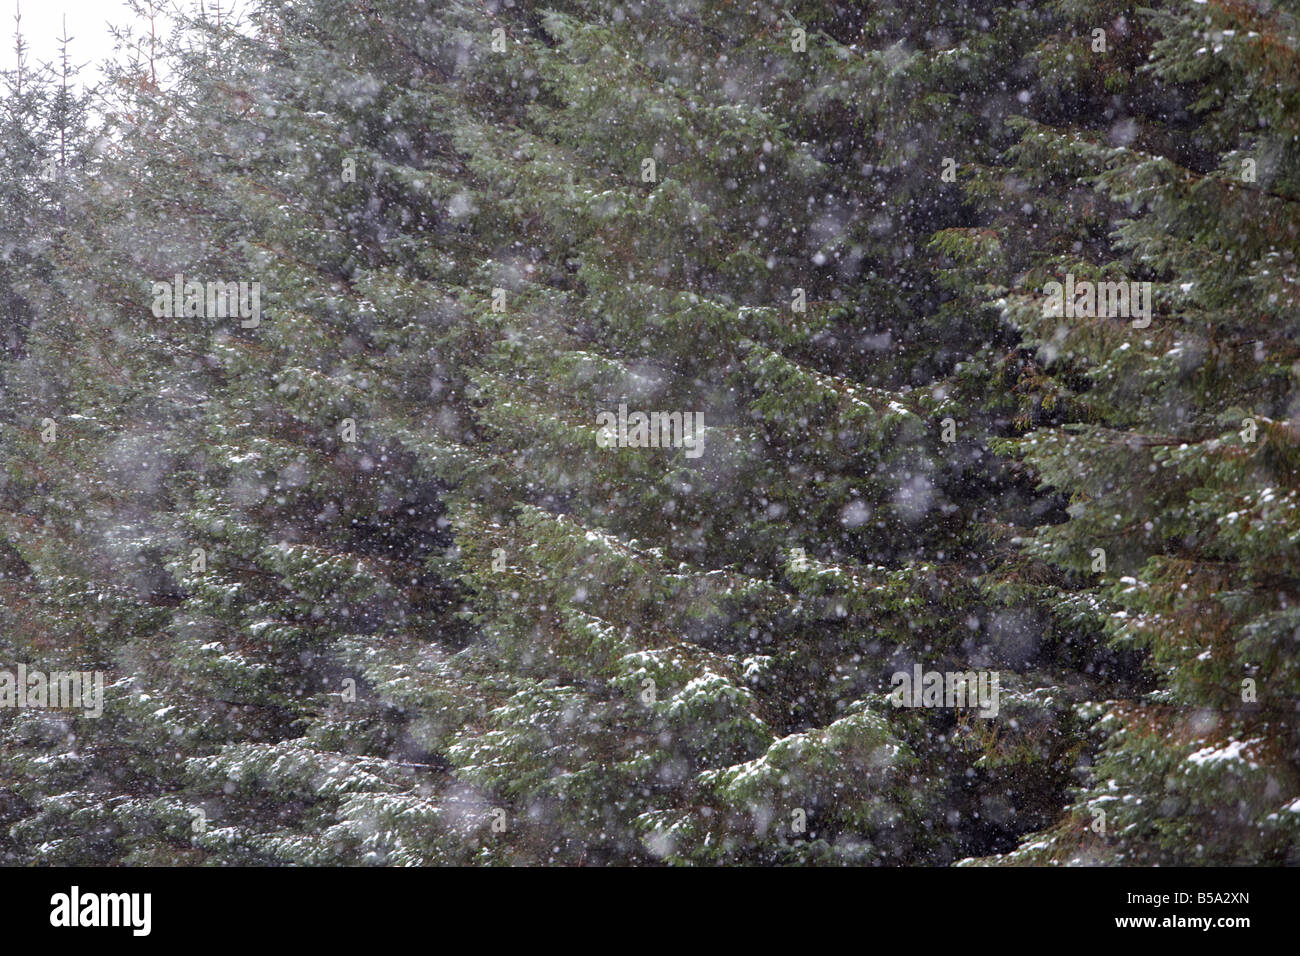 snow falling on evergreen conifer pine trees in a forest in county antrim northern ireland uk - Stock Image